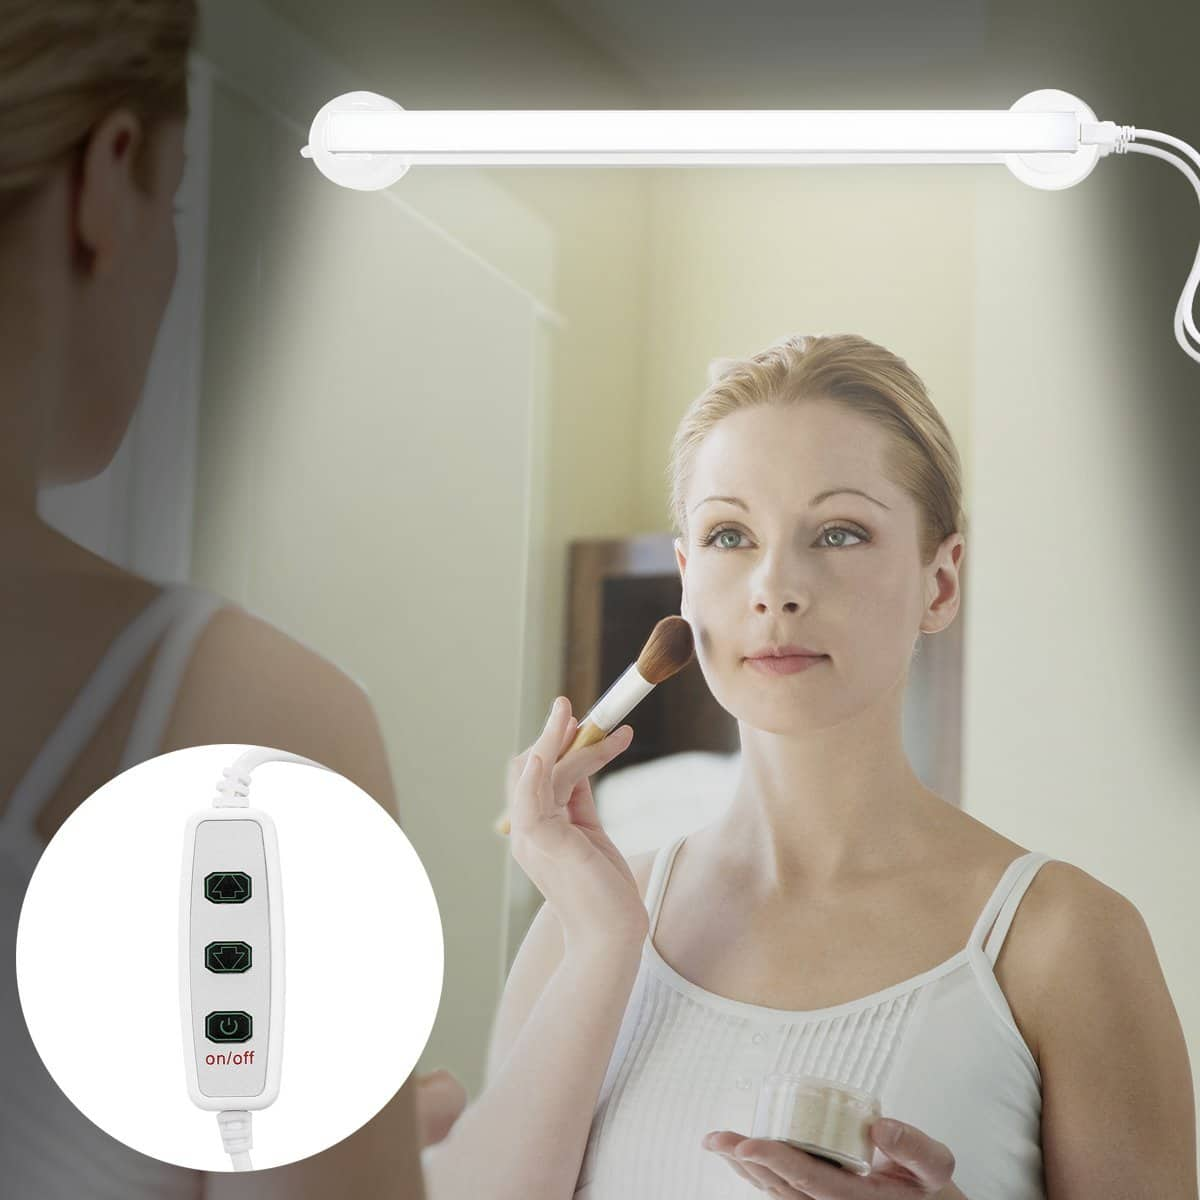 Adhesive LED Vanity Mirror Light - Makeup Light with 360 degree rotation $13.29